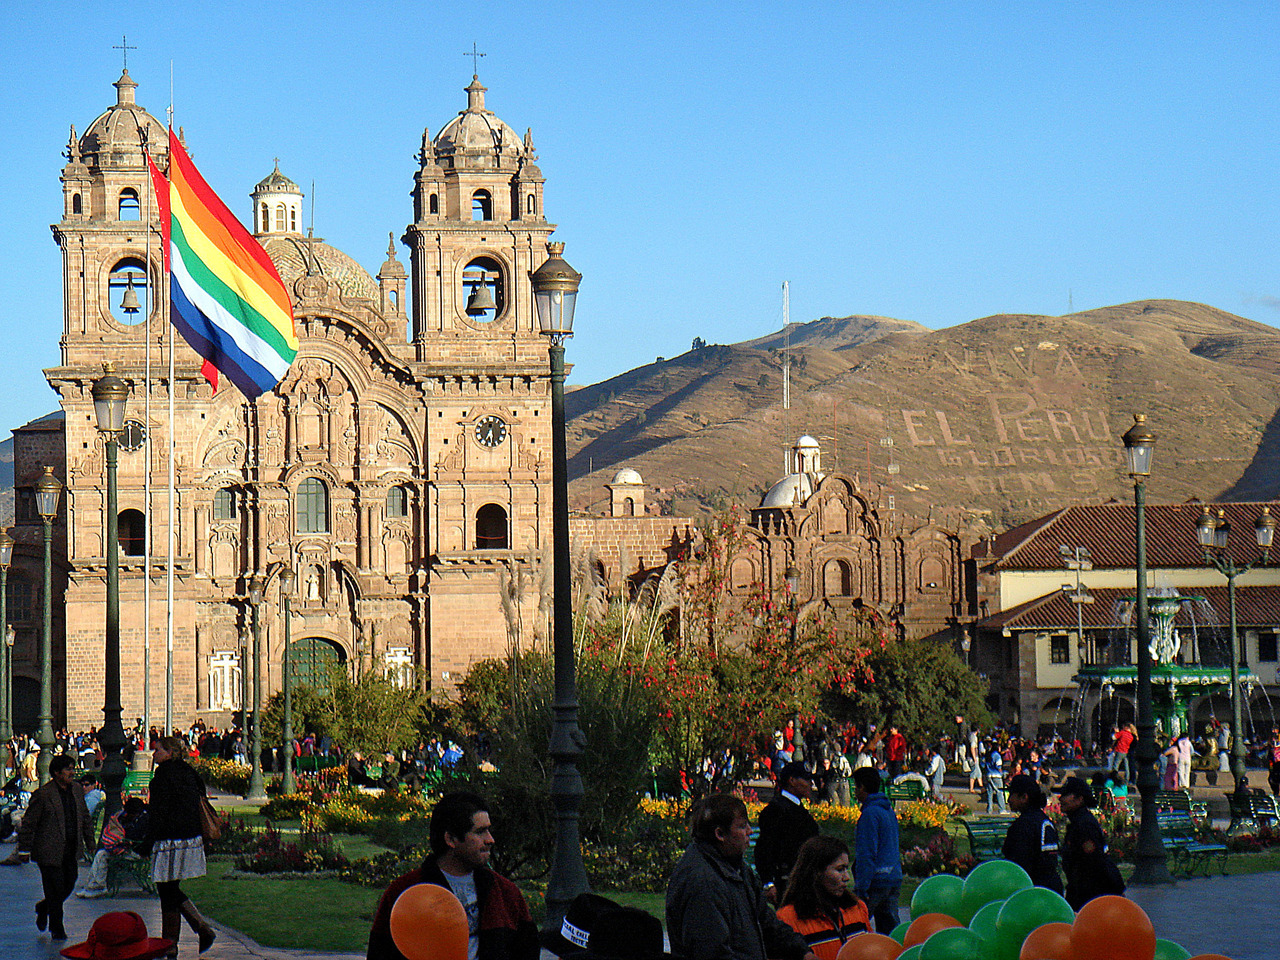 """The rainbow flag has been associated with the Tawantinsuyu and is displayed as a symbol of Inca heritage in Peru and Bolivia."" and tonight, a rainbow flag supported by the San Diego City Council will be raised permanently in the Hillcrest community to kick off Pride weekend!"